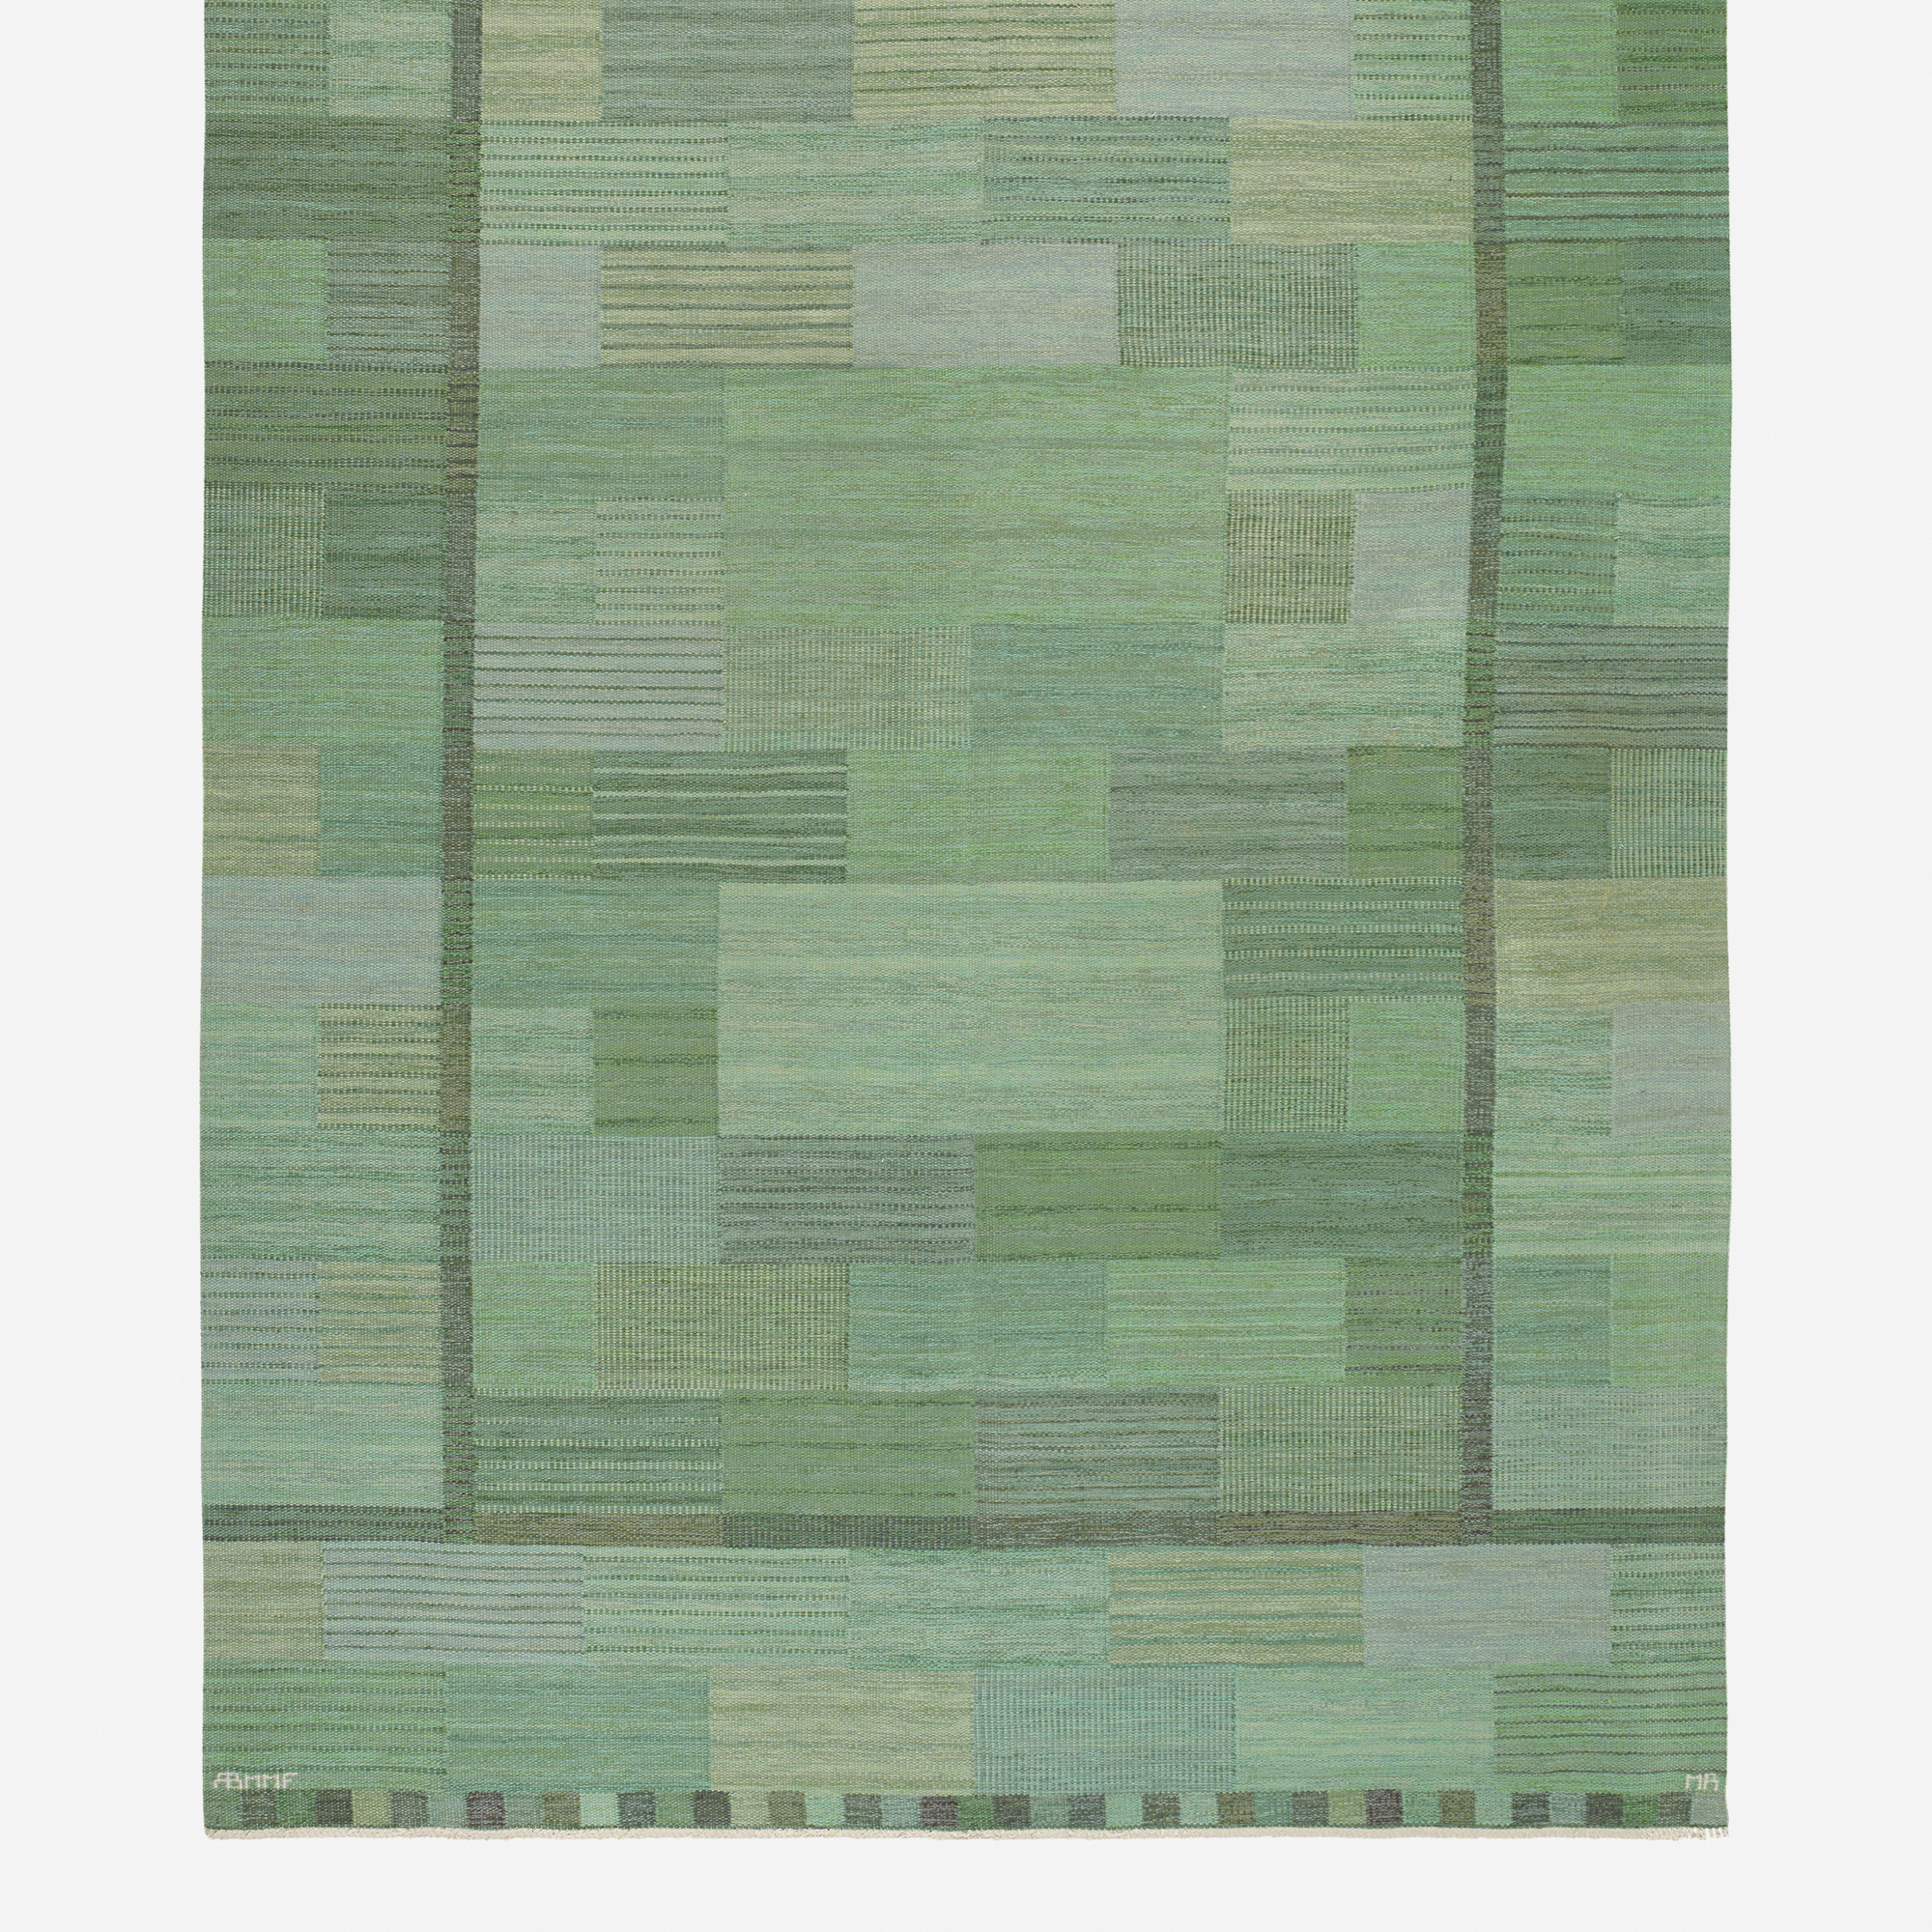 108: Marianne Richter / Fasad flatweave carpet (2 of 2)